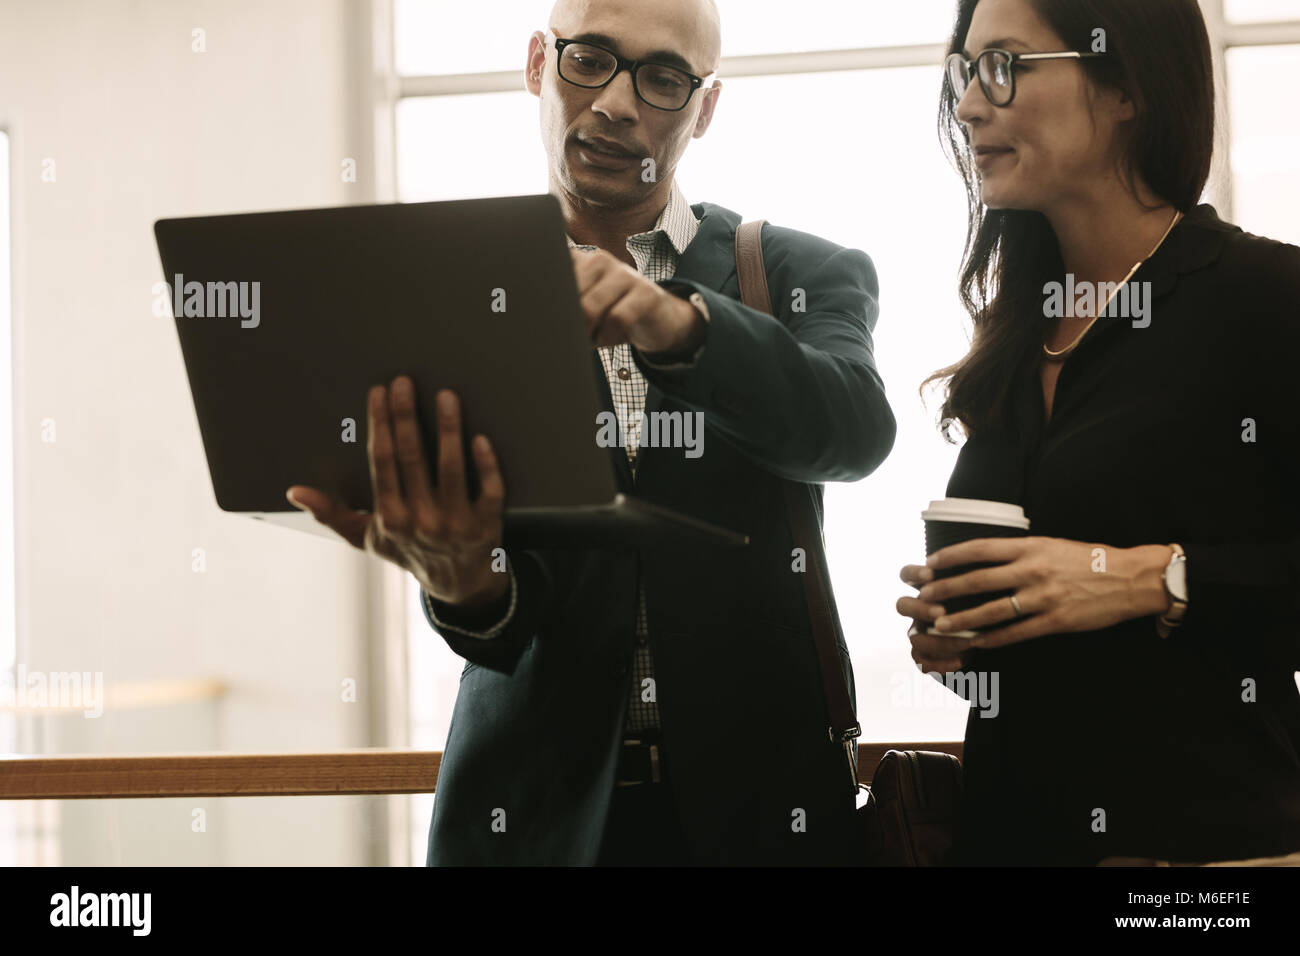 Businessman pointing at laptop and discussing something with coworker while standing at office. Business team working - Stock Image